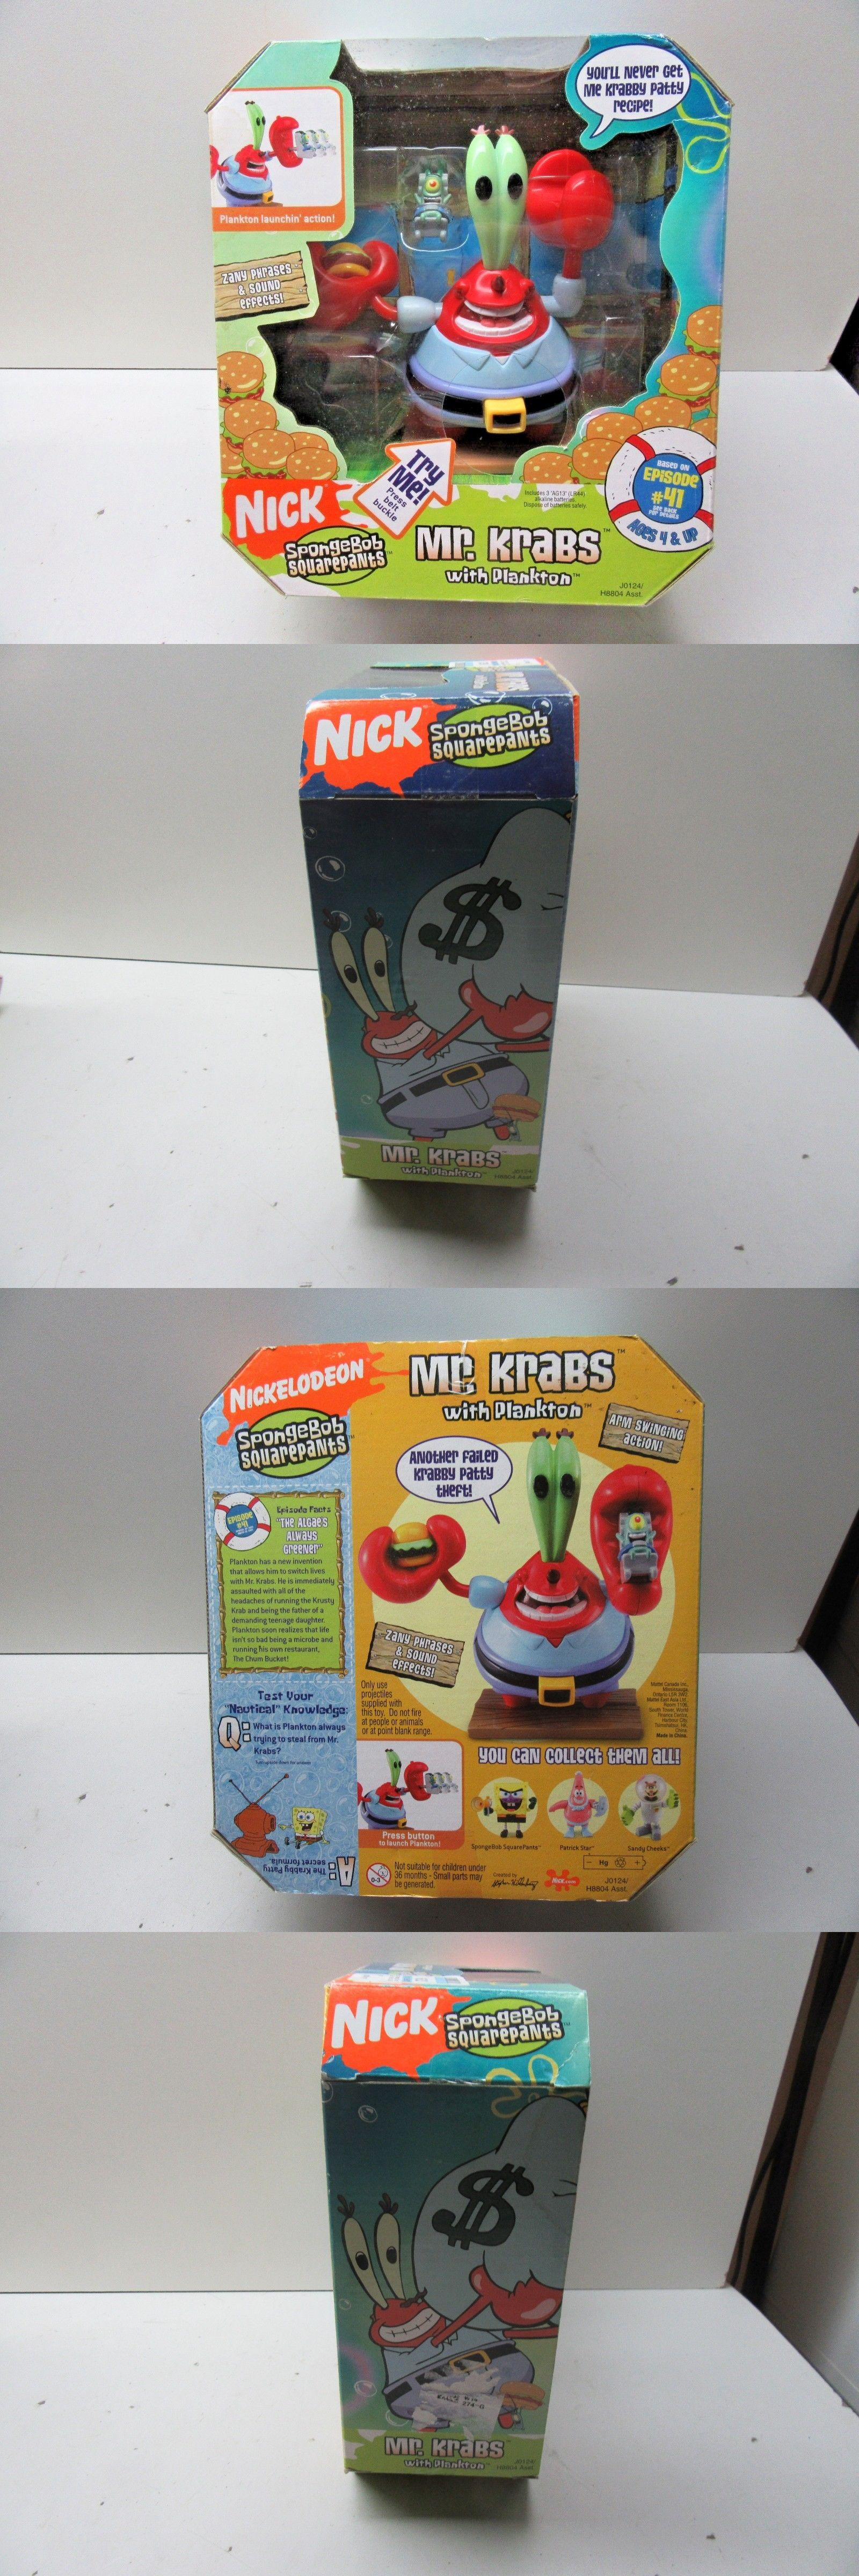 spongebob squarepants 20919 2005 mattel spongebob squarepants mr